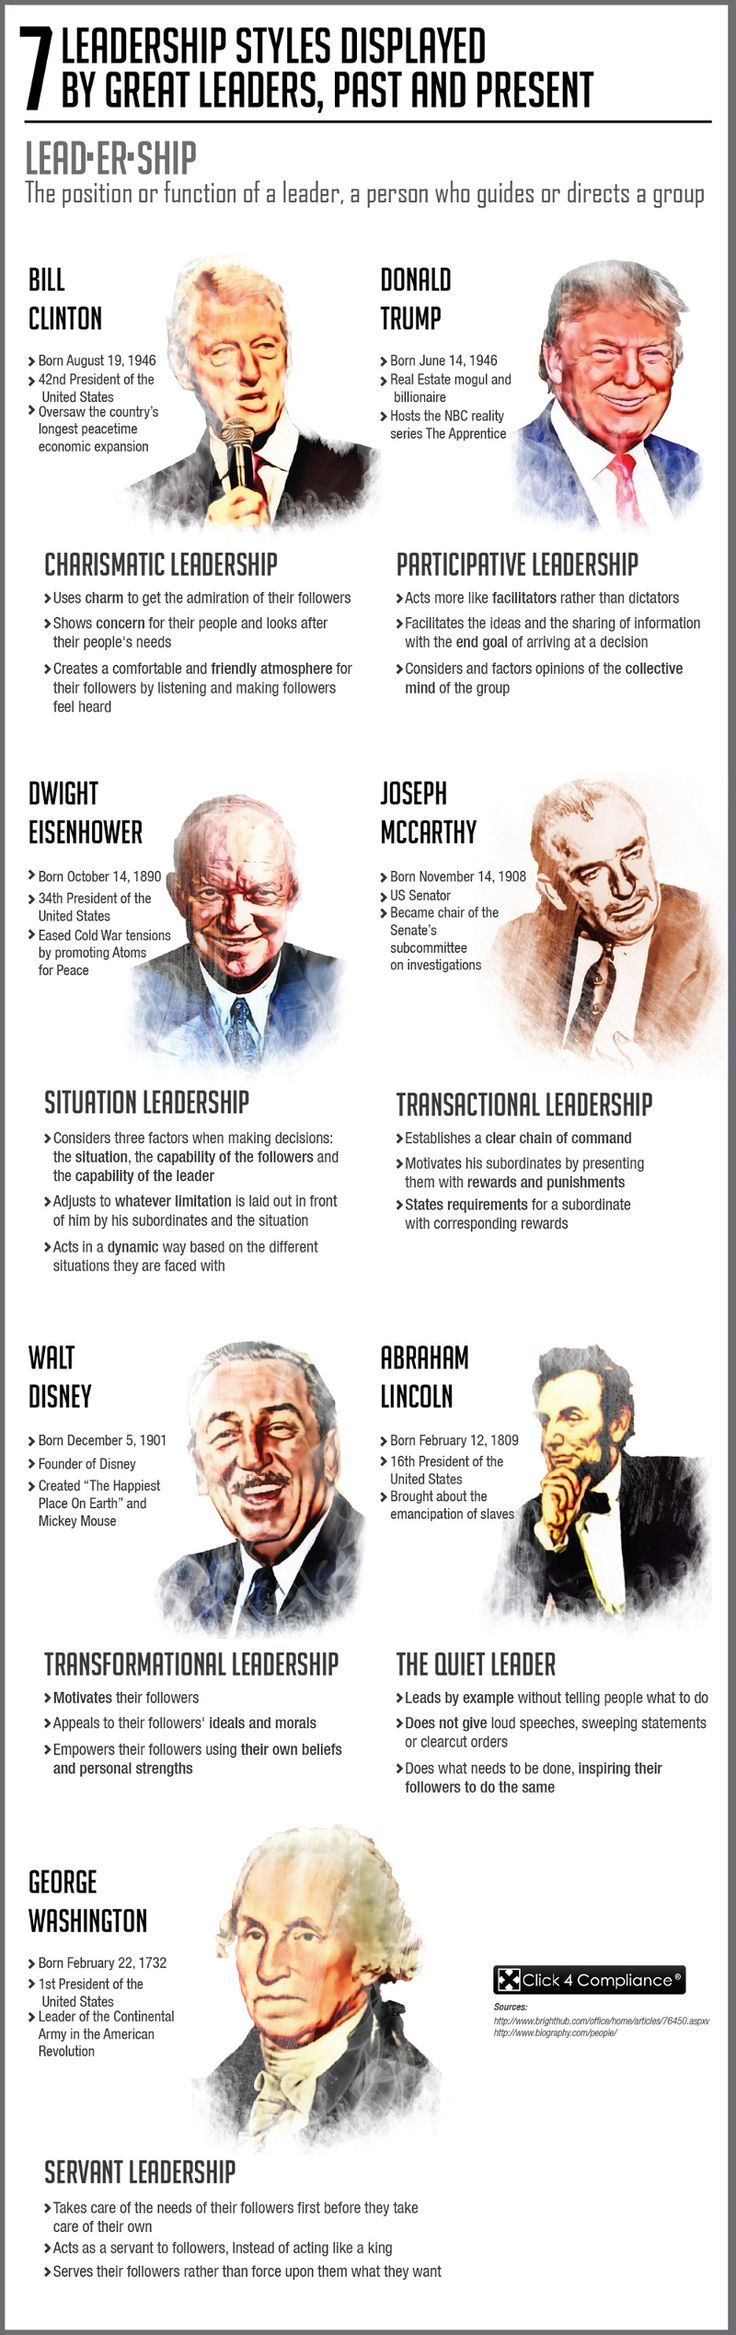 7 Leadership Styles of Great Leaders. Really makes you think...what kind of leader are you?